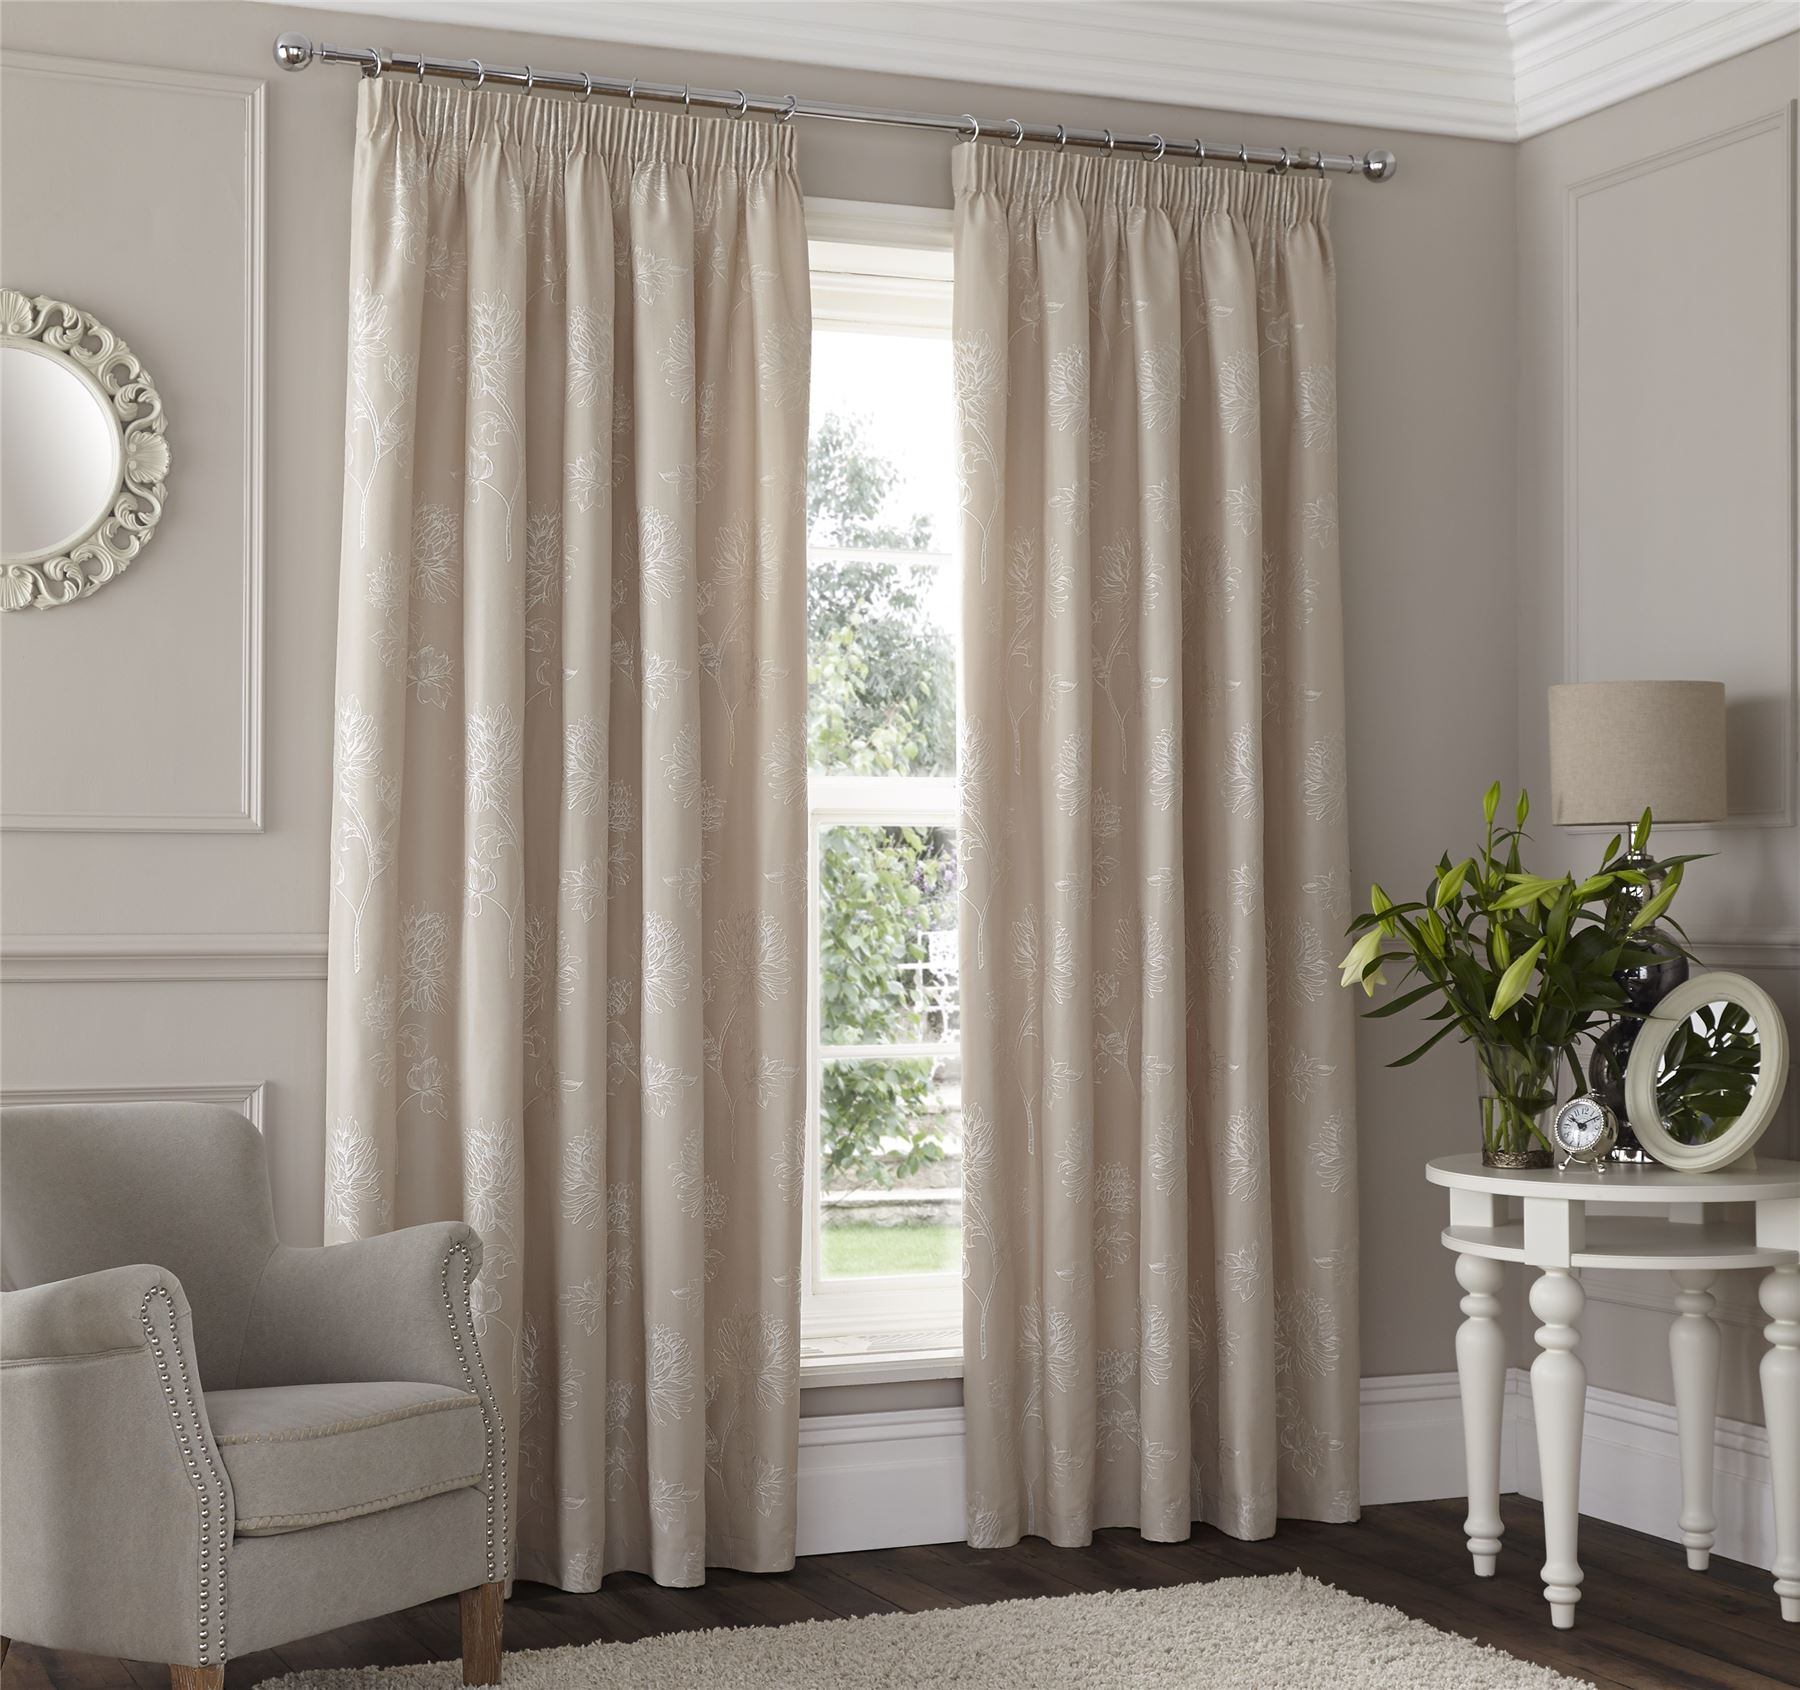 Diy Ripplefold Curtains Beige Embroidered Floral Lined Pencil Pleat Curtains